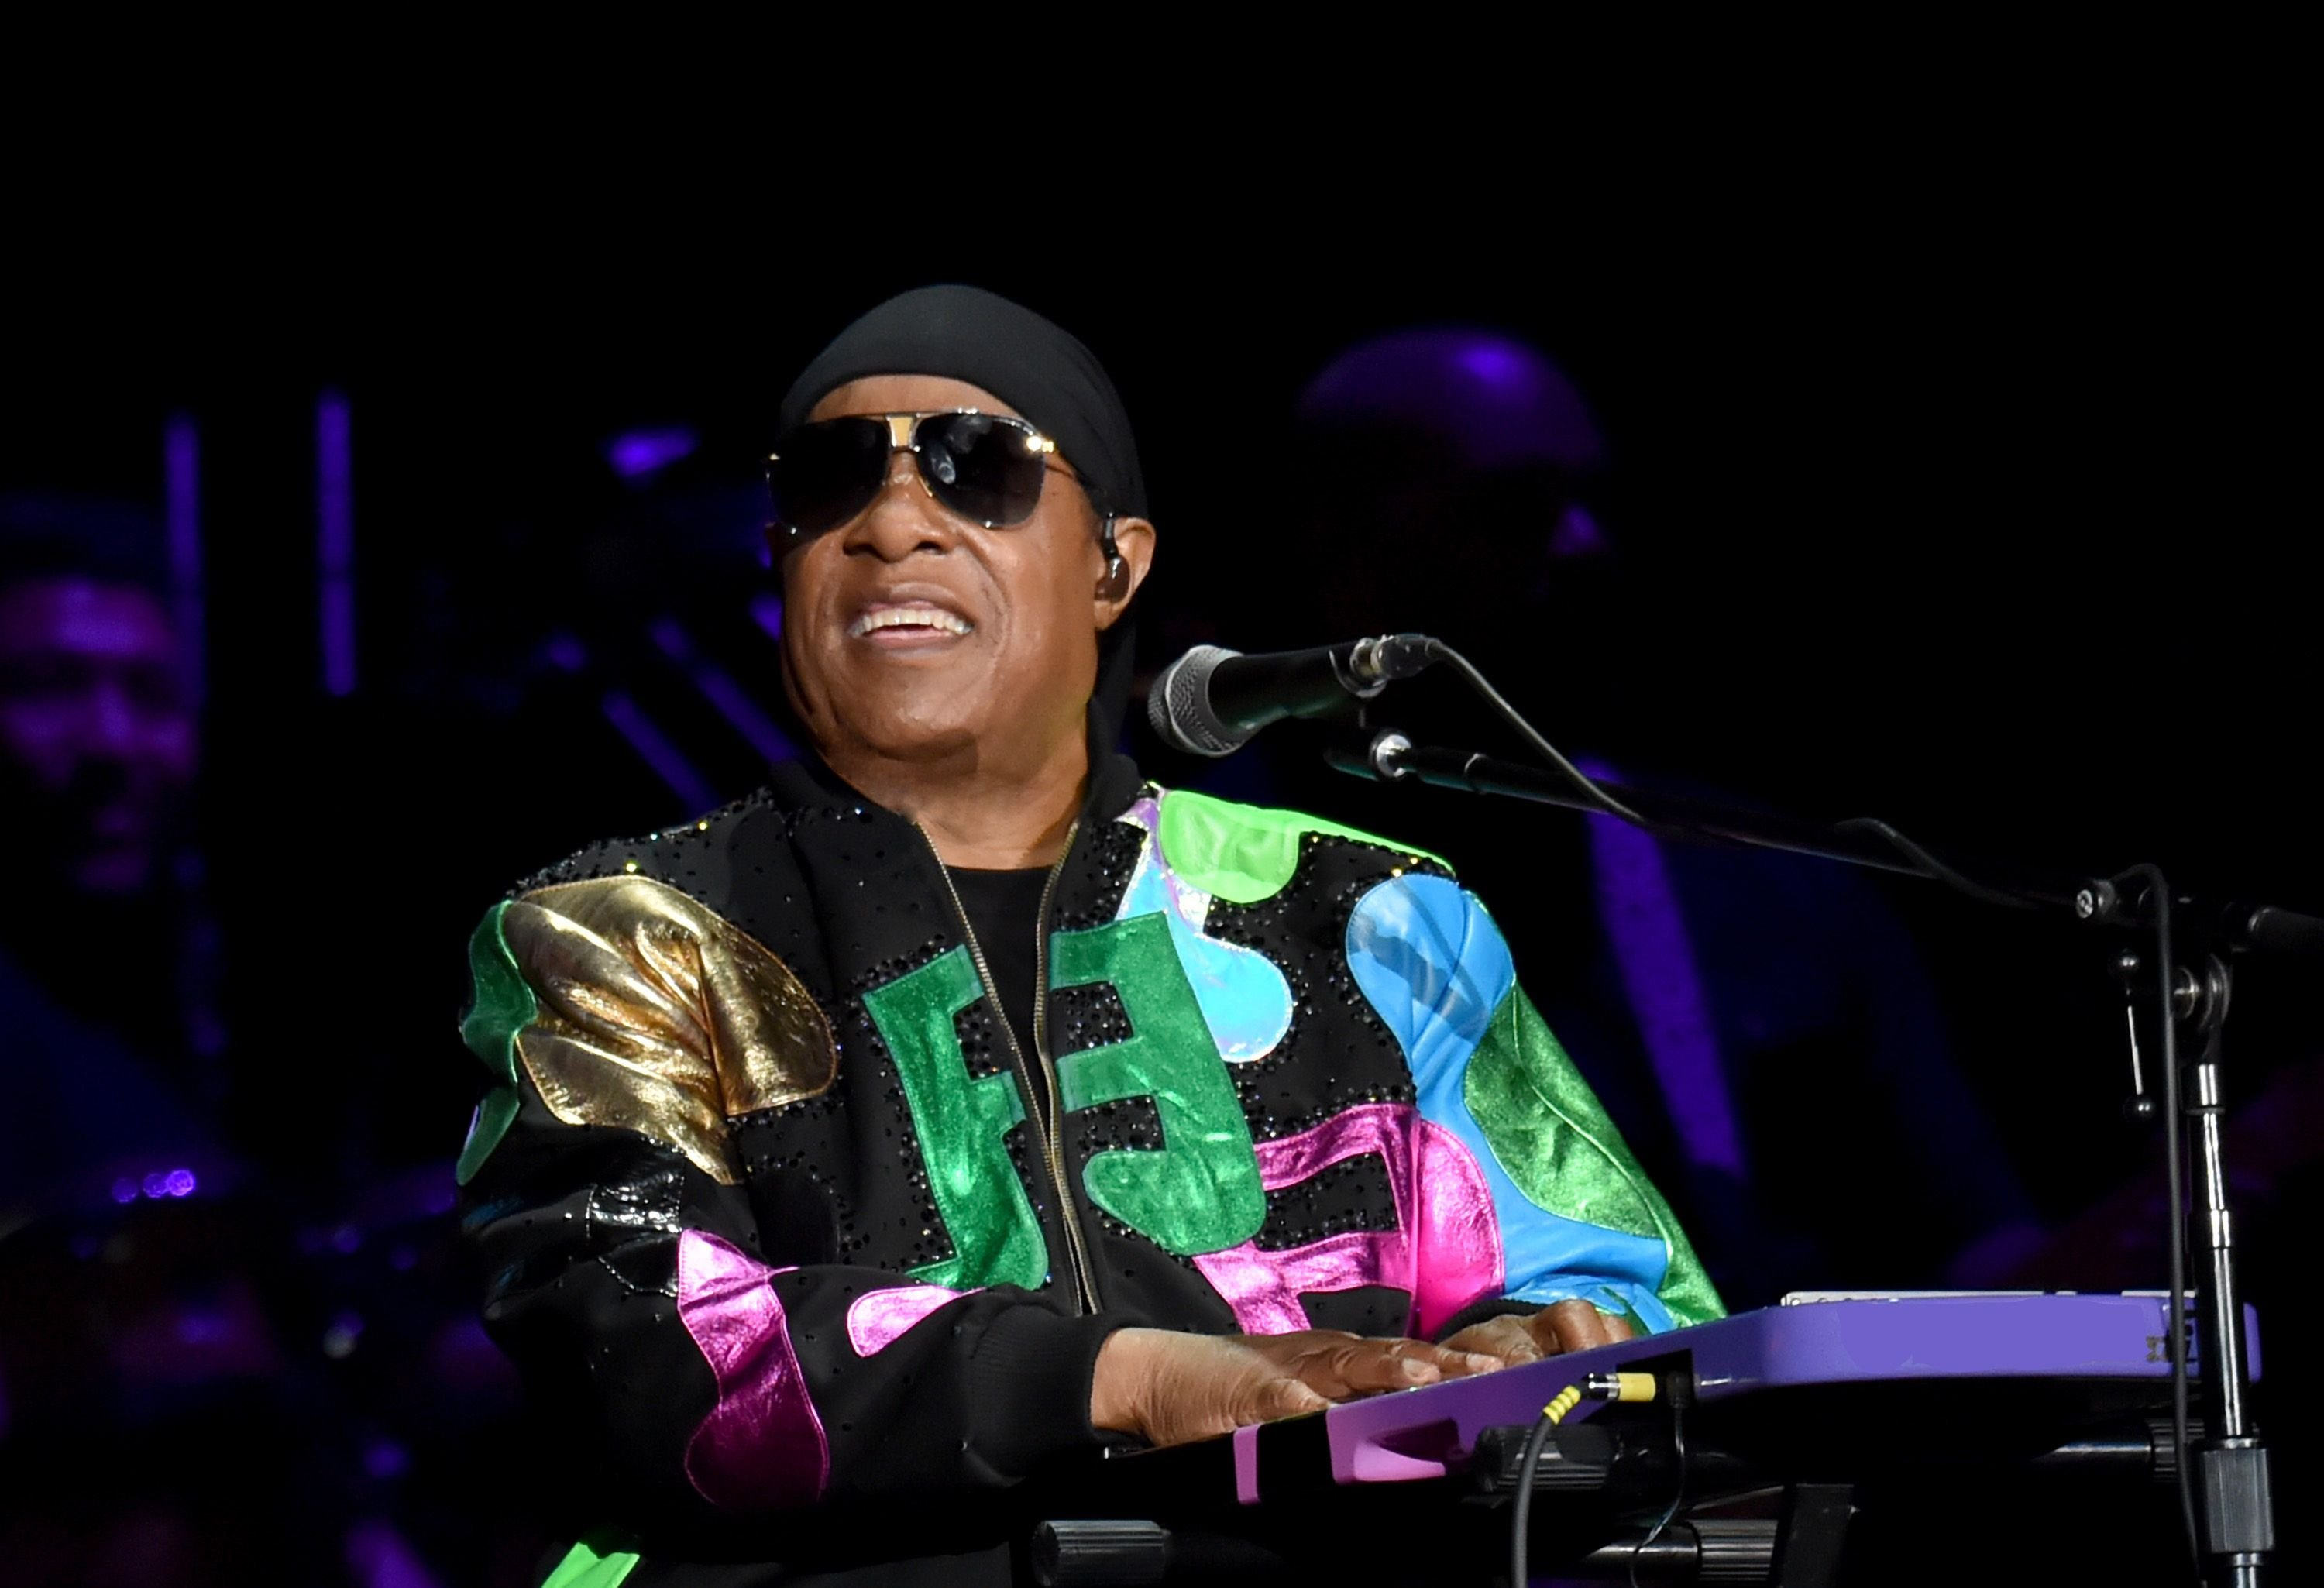 Stevie Wonder at the British Summer Time Hyde Park concert in 2019 in London, England | Source: Getty Images